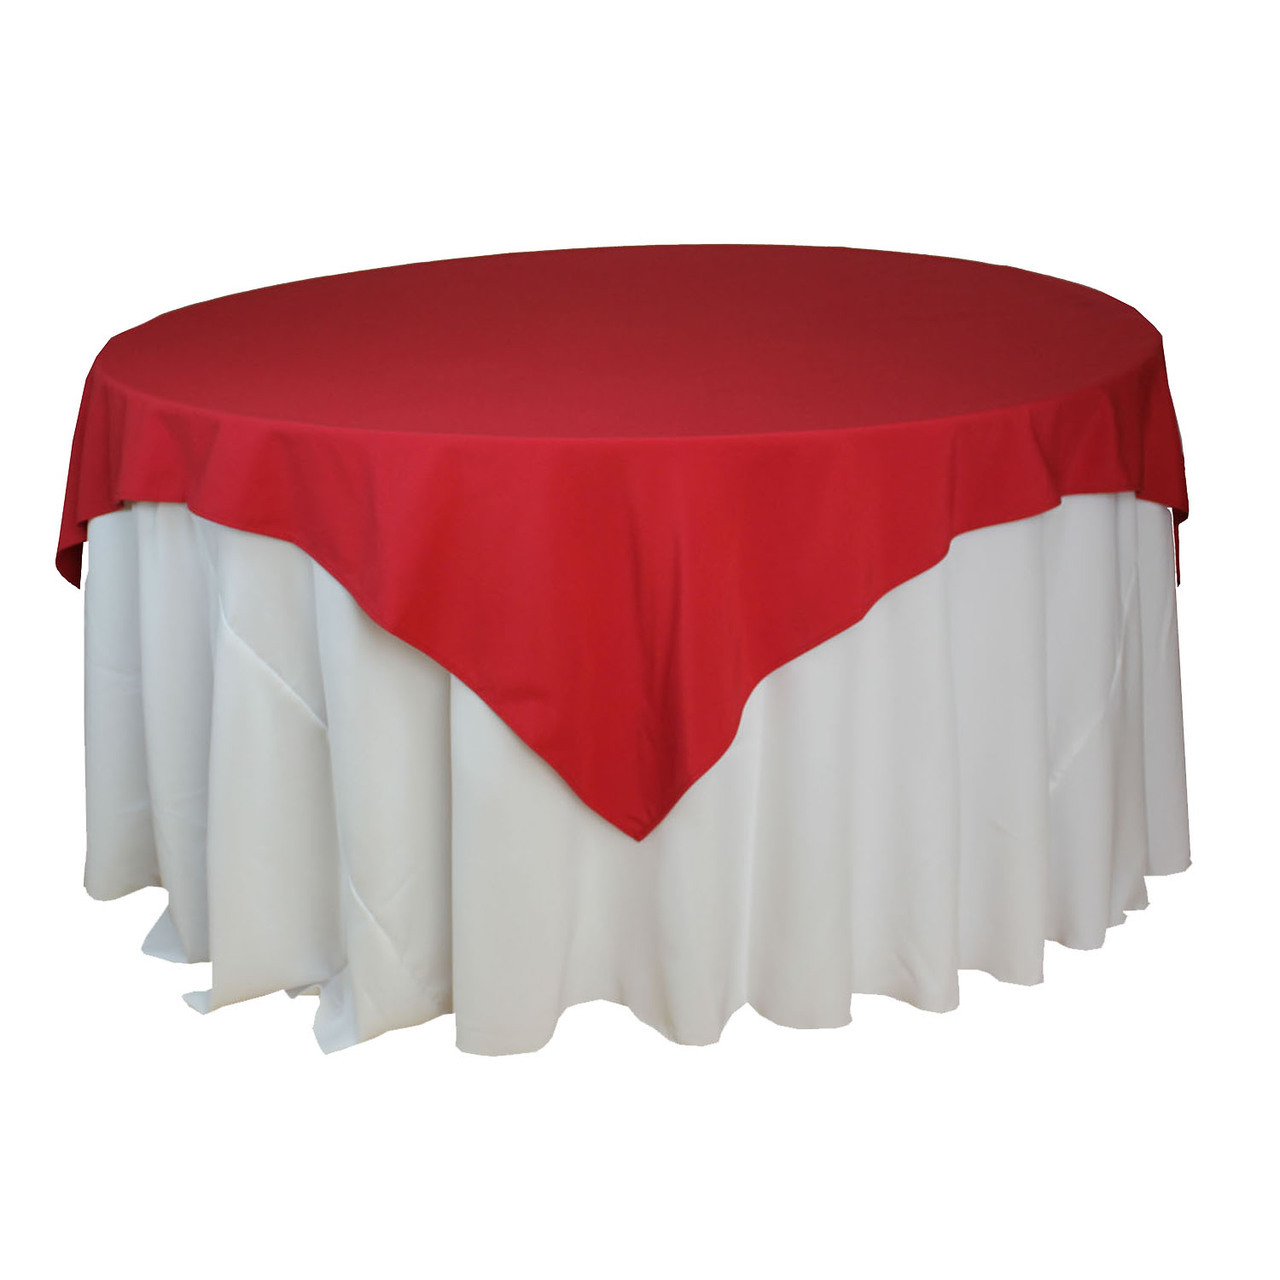 72 Quot X 72 Quot Square Overlay Tablecloth Rent All Plaza Of